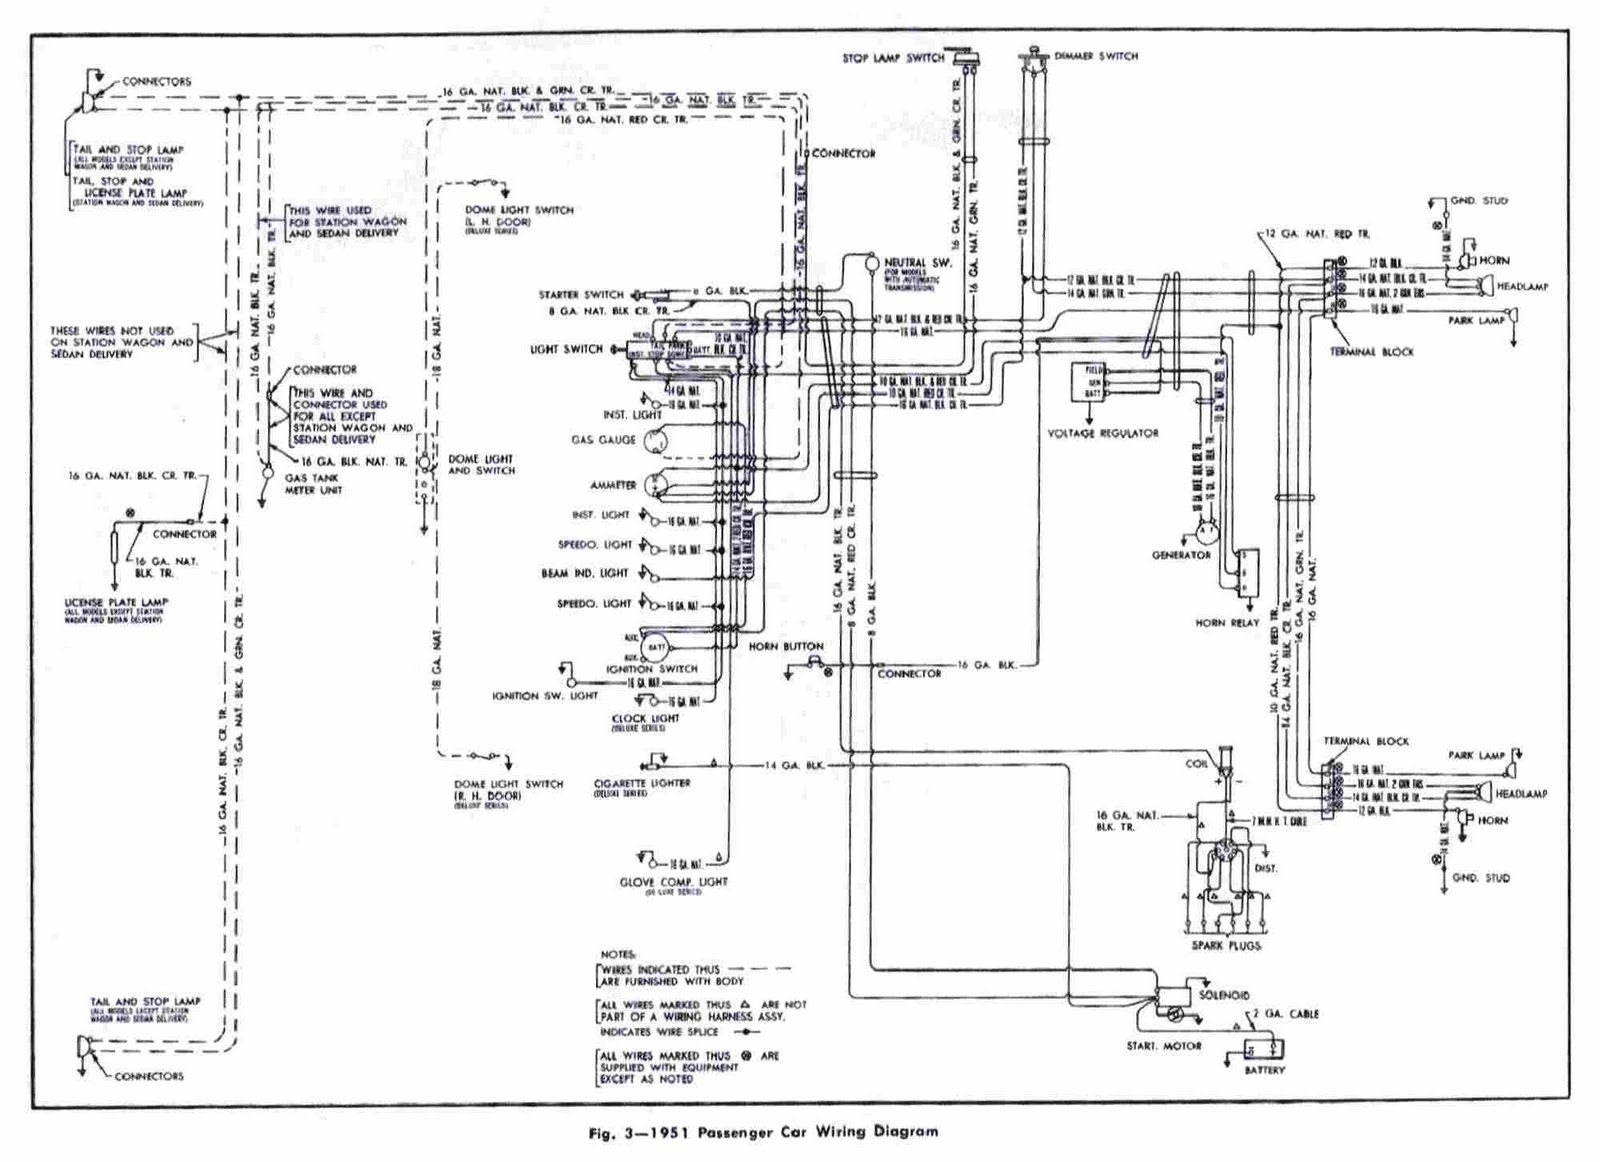 1954 gmc wiring diagram